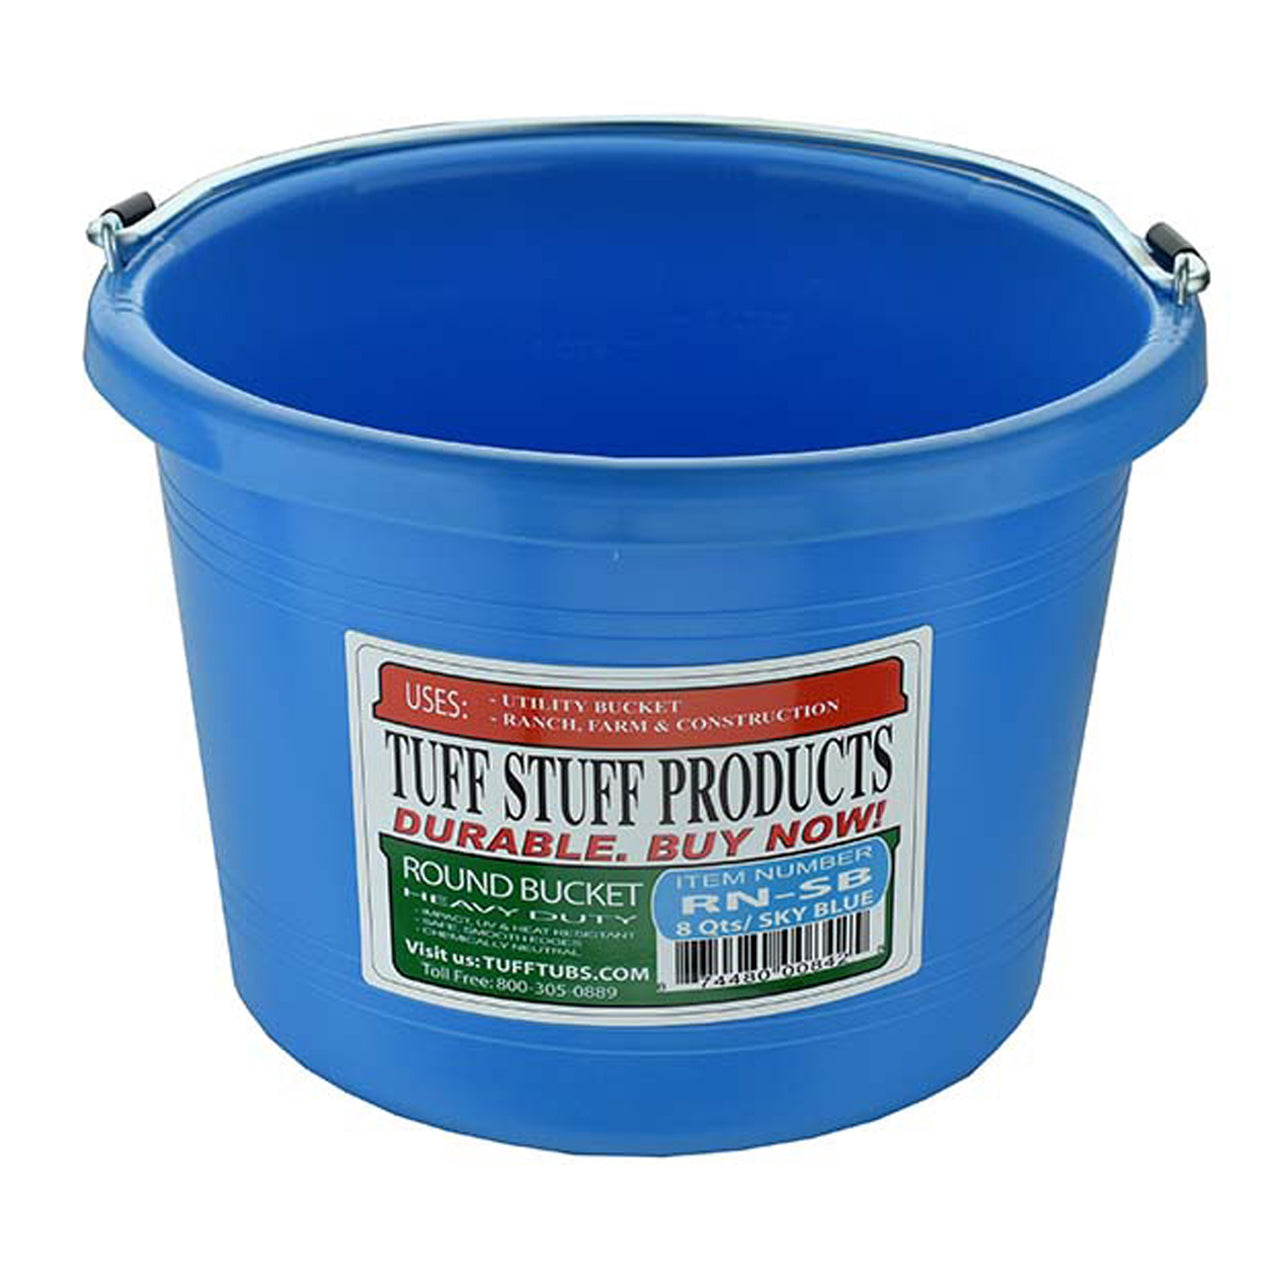 Tuff Stuff Round Bucket 8 Qts - Sky Blue - Buckets Pails Feeders Scoops Tubs Bottles Tuff Stuff - Canada